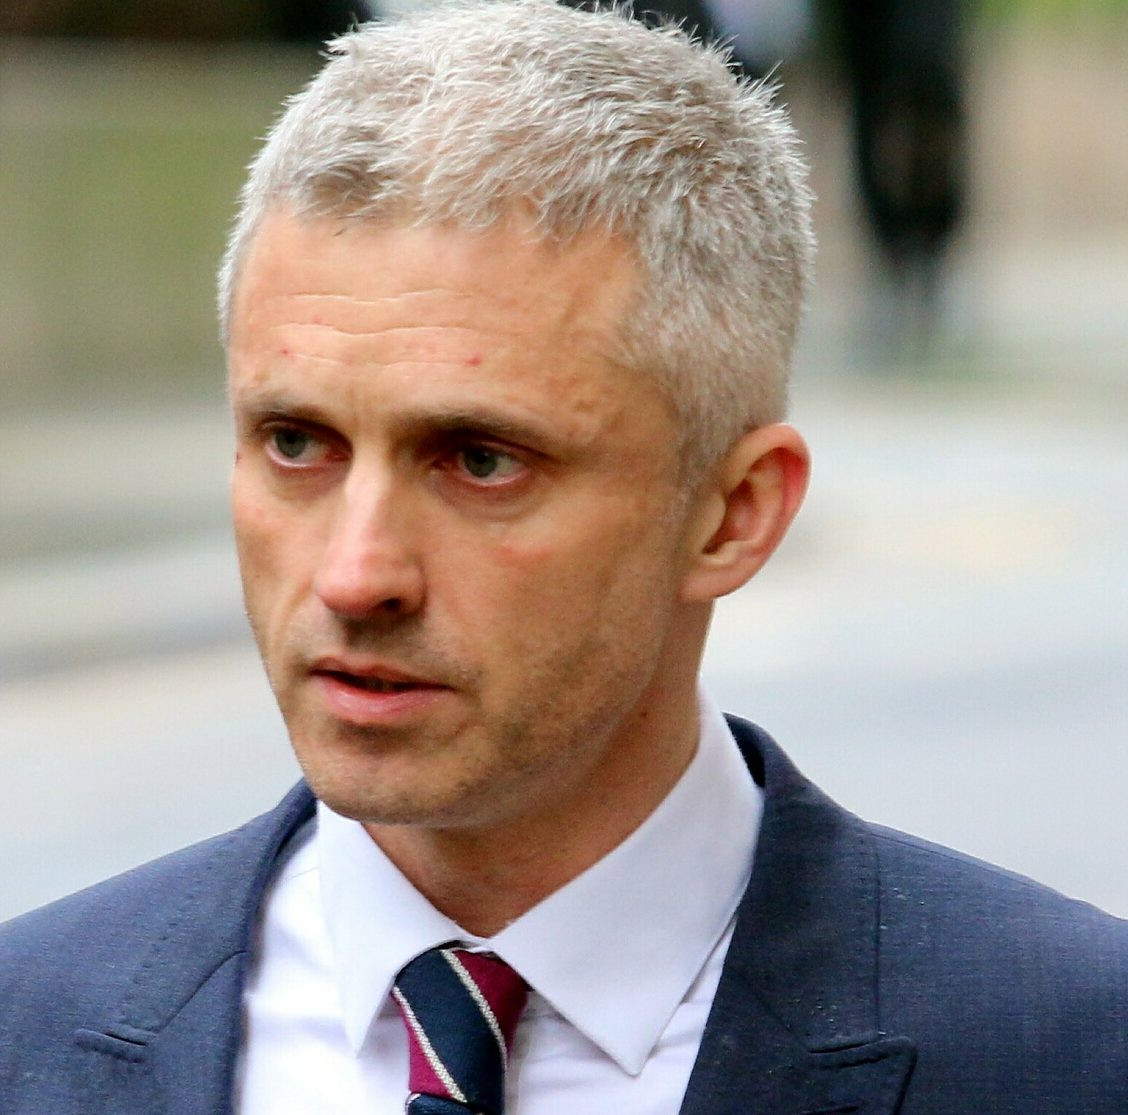 Trial for BBC producer over chemsex drugs